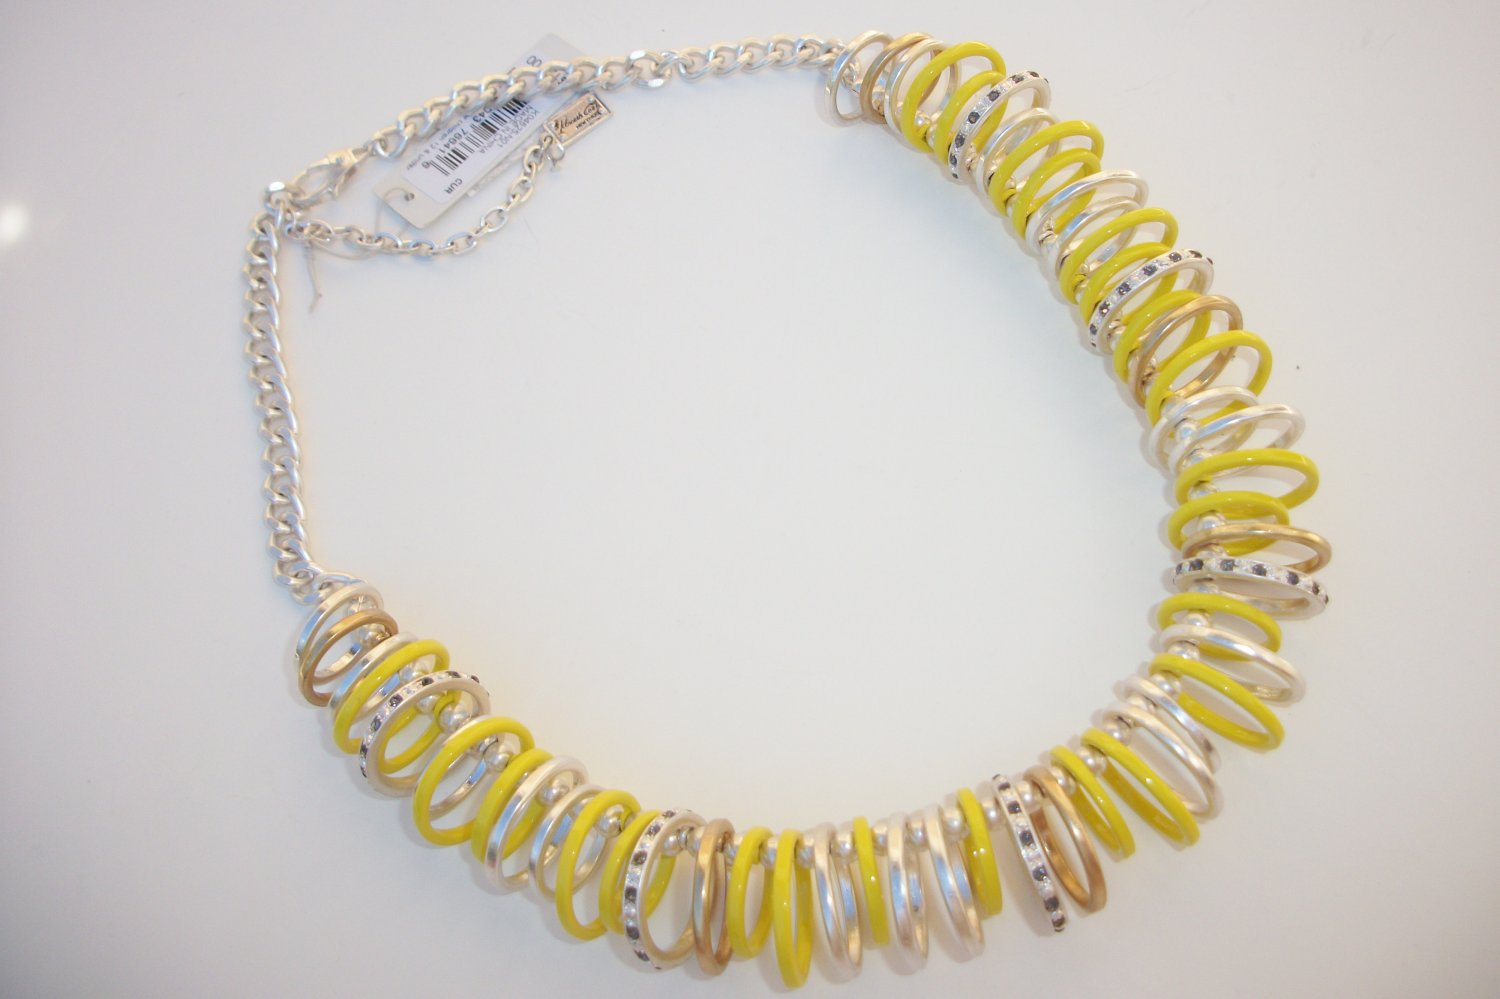 $125 Kenneth Cole 'Urban Rings' Necklace Yellow Silver Gold Hematite Crystals